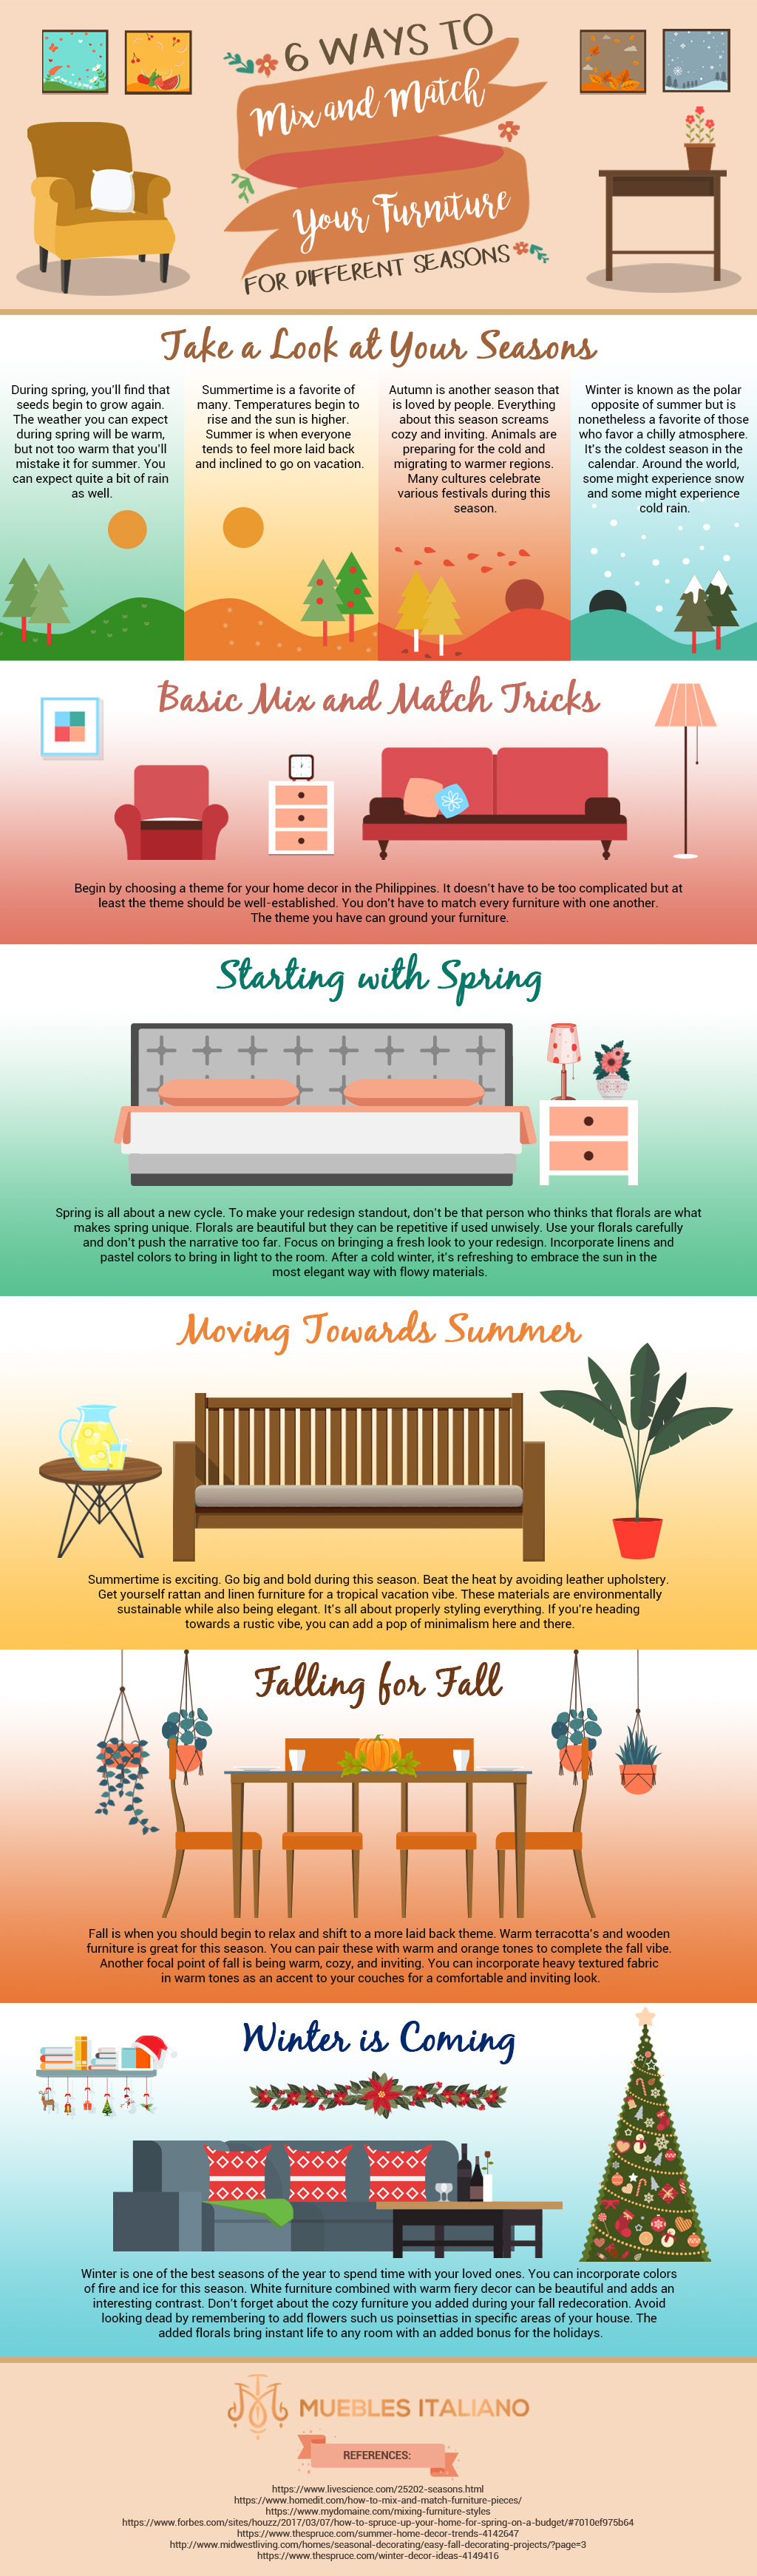 Infog 6 Ways To Mix And Match Your Furniture For Different Seasons